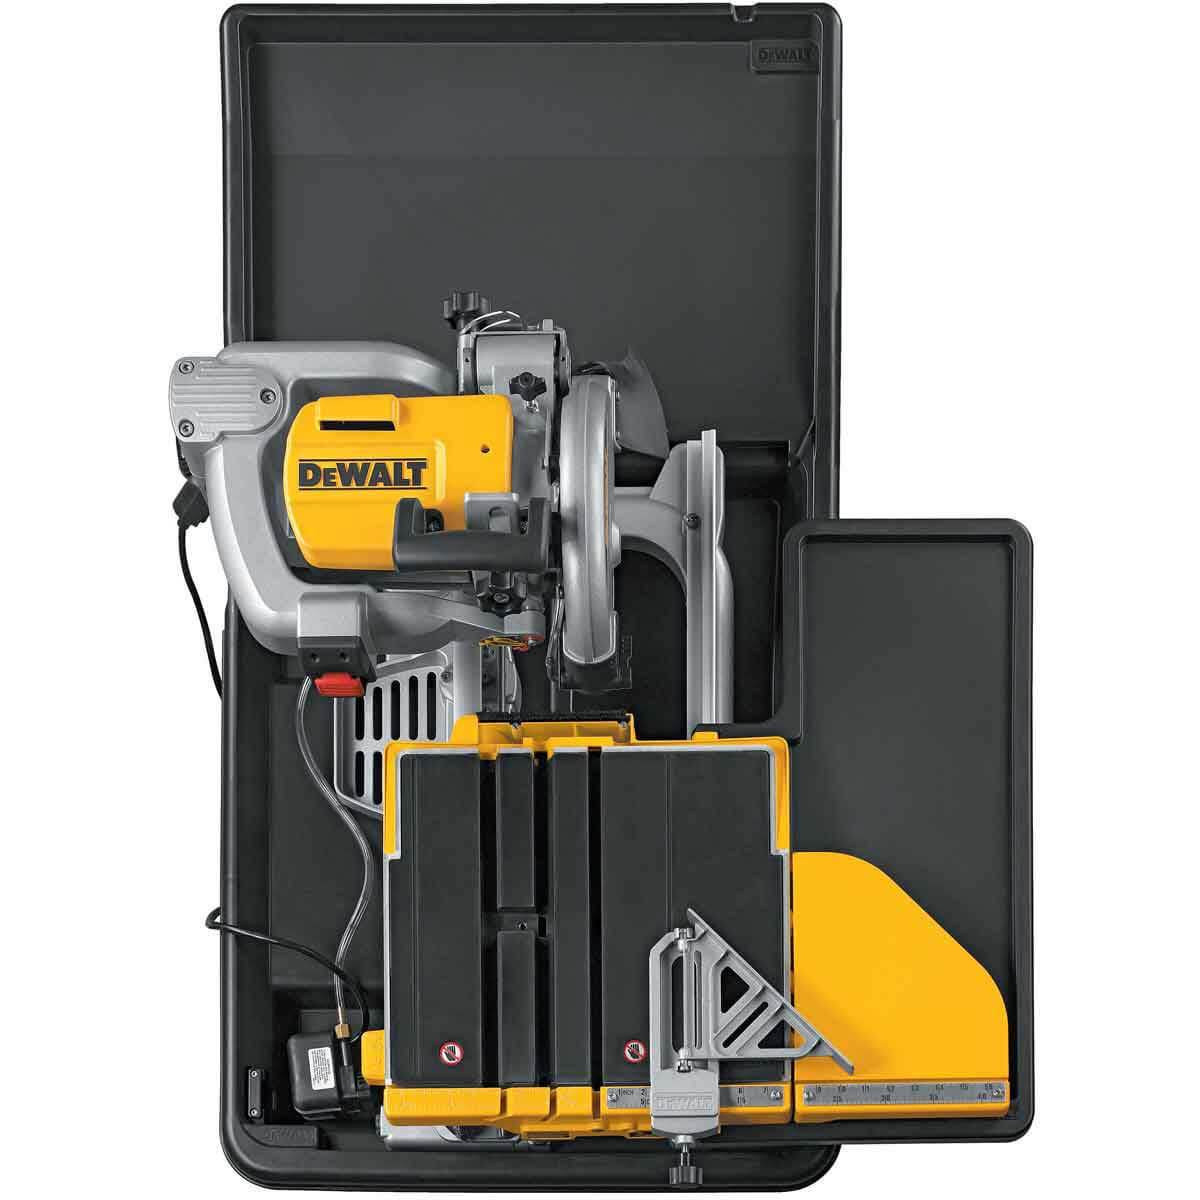 dewalt d24000 tile saw overheadview